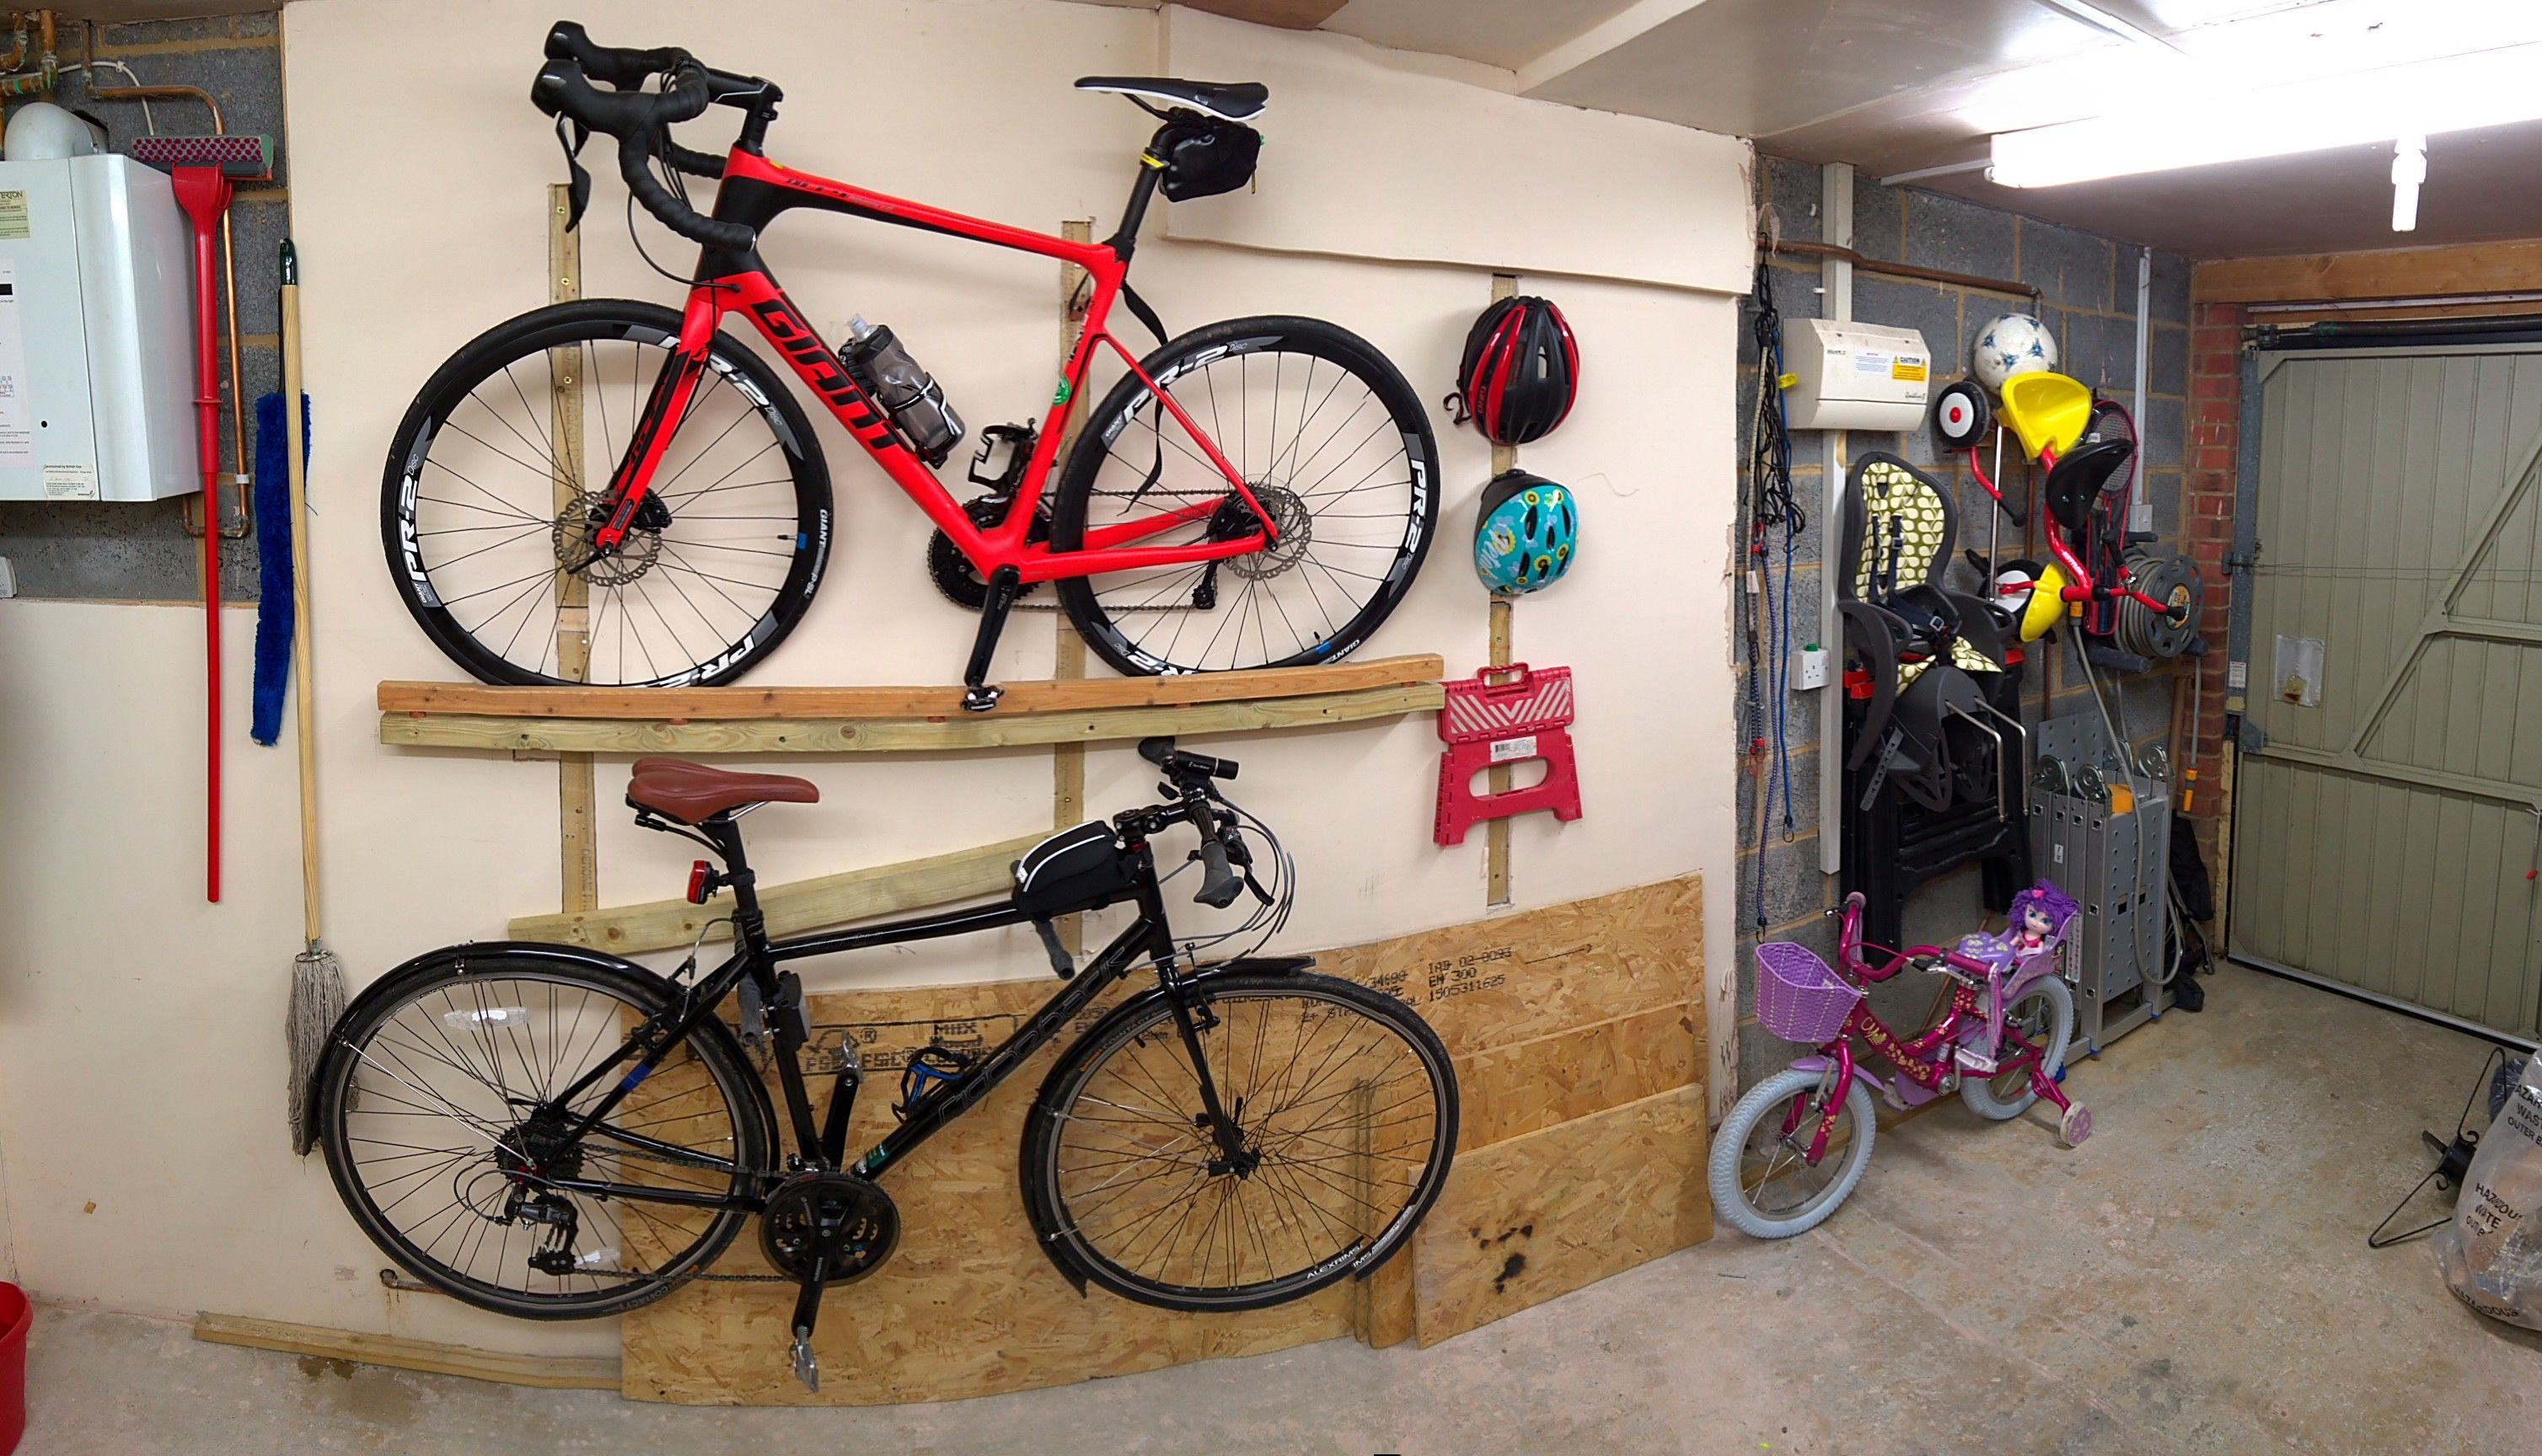 Explore Bicycle Rack, Chain, And More